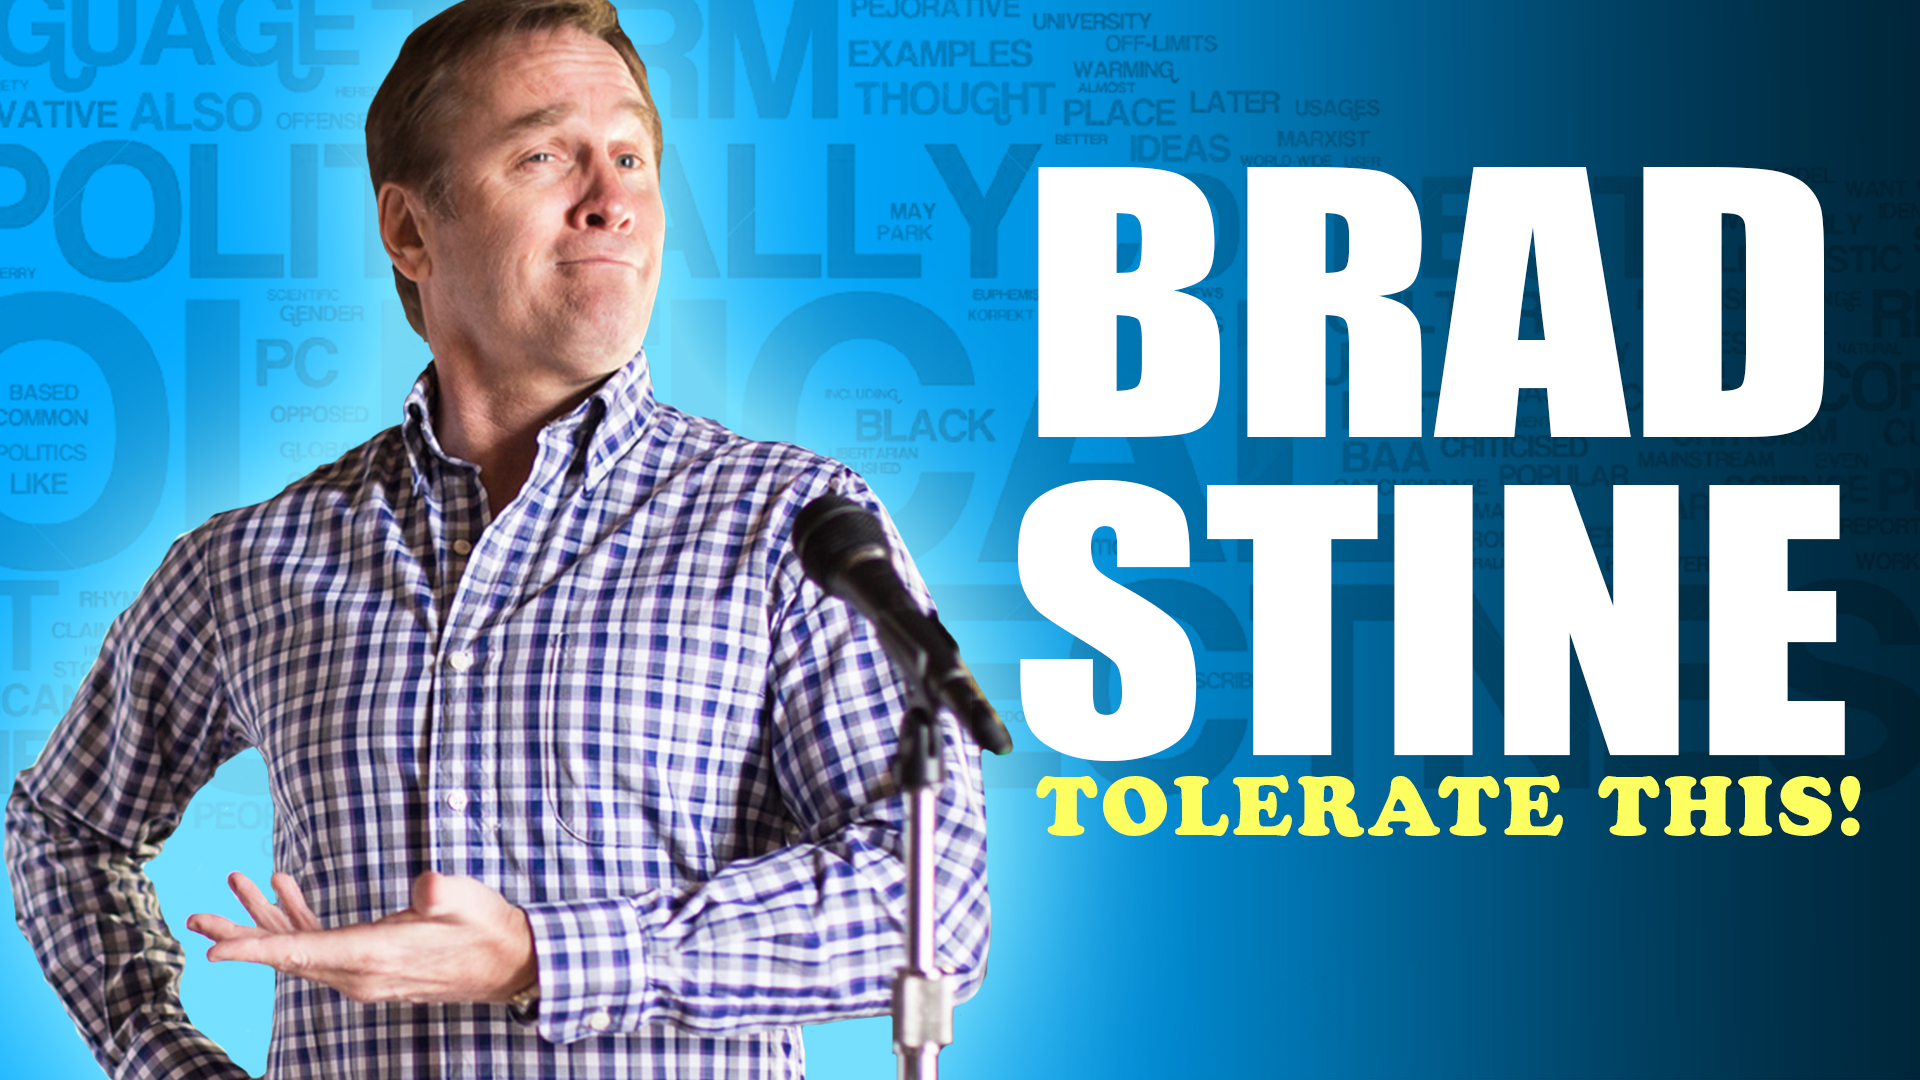 Brad Stine: Tolerate This